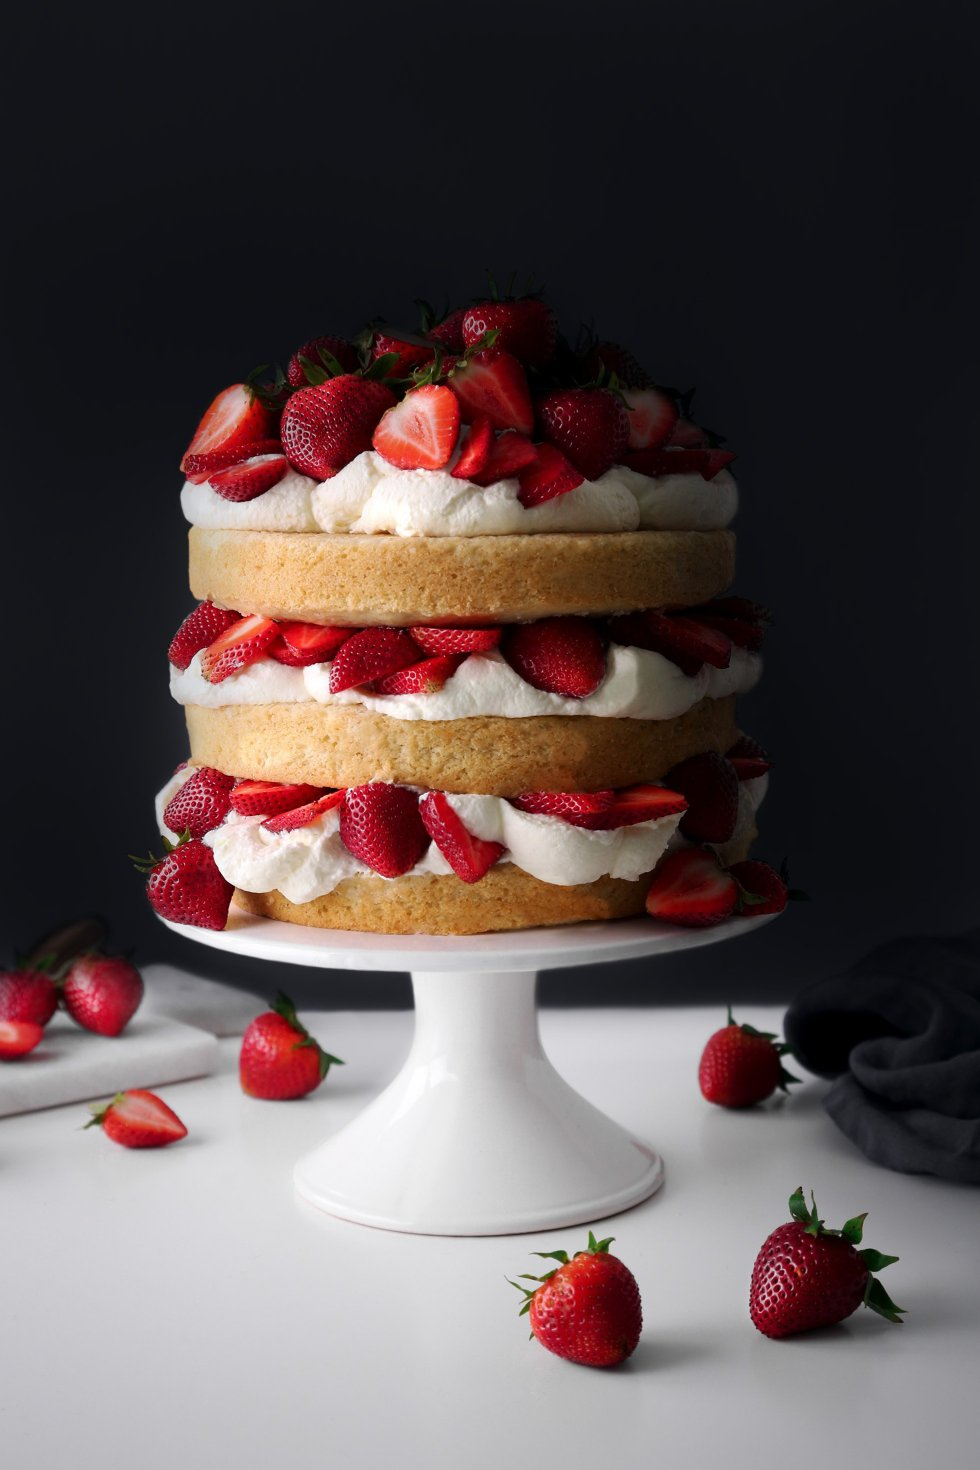 Strawberry Shortcake Cake | Vegan Friendly with a Gluten-Free Option